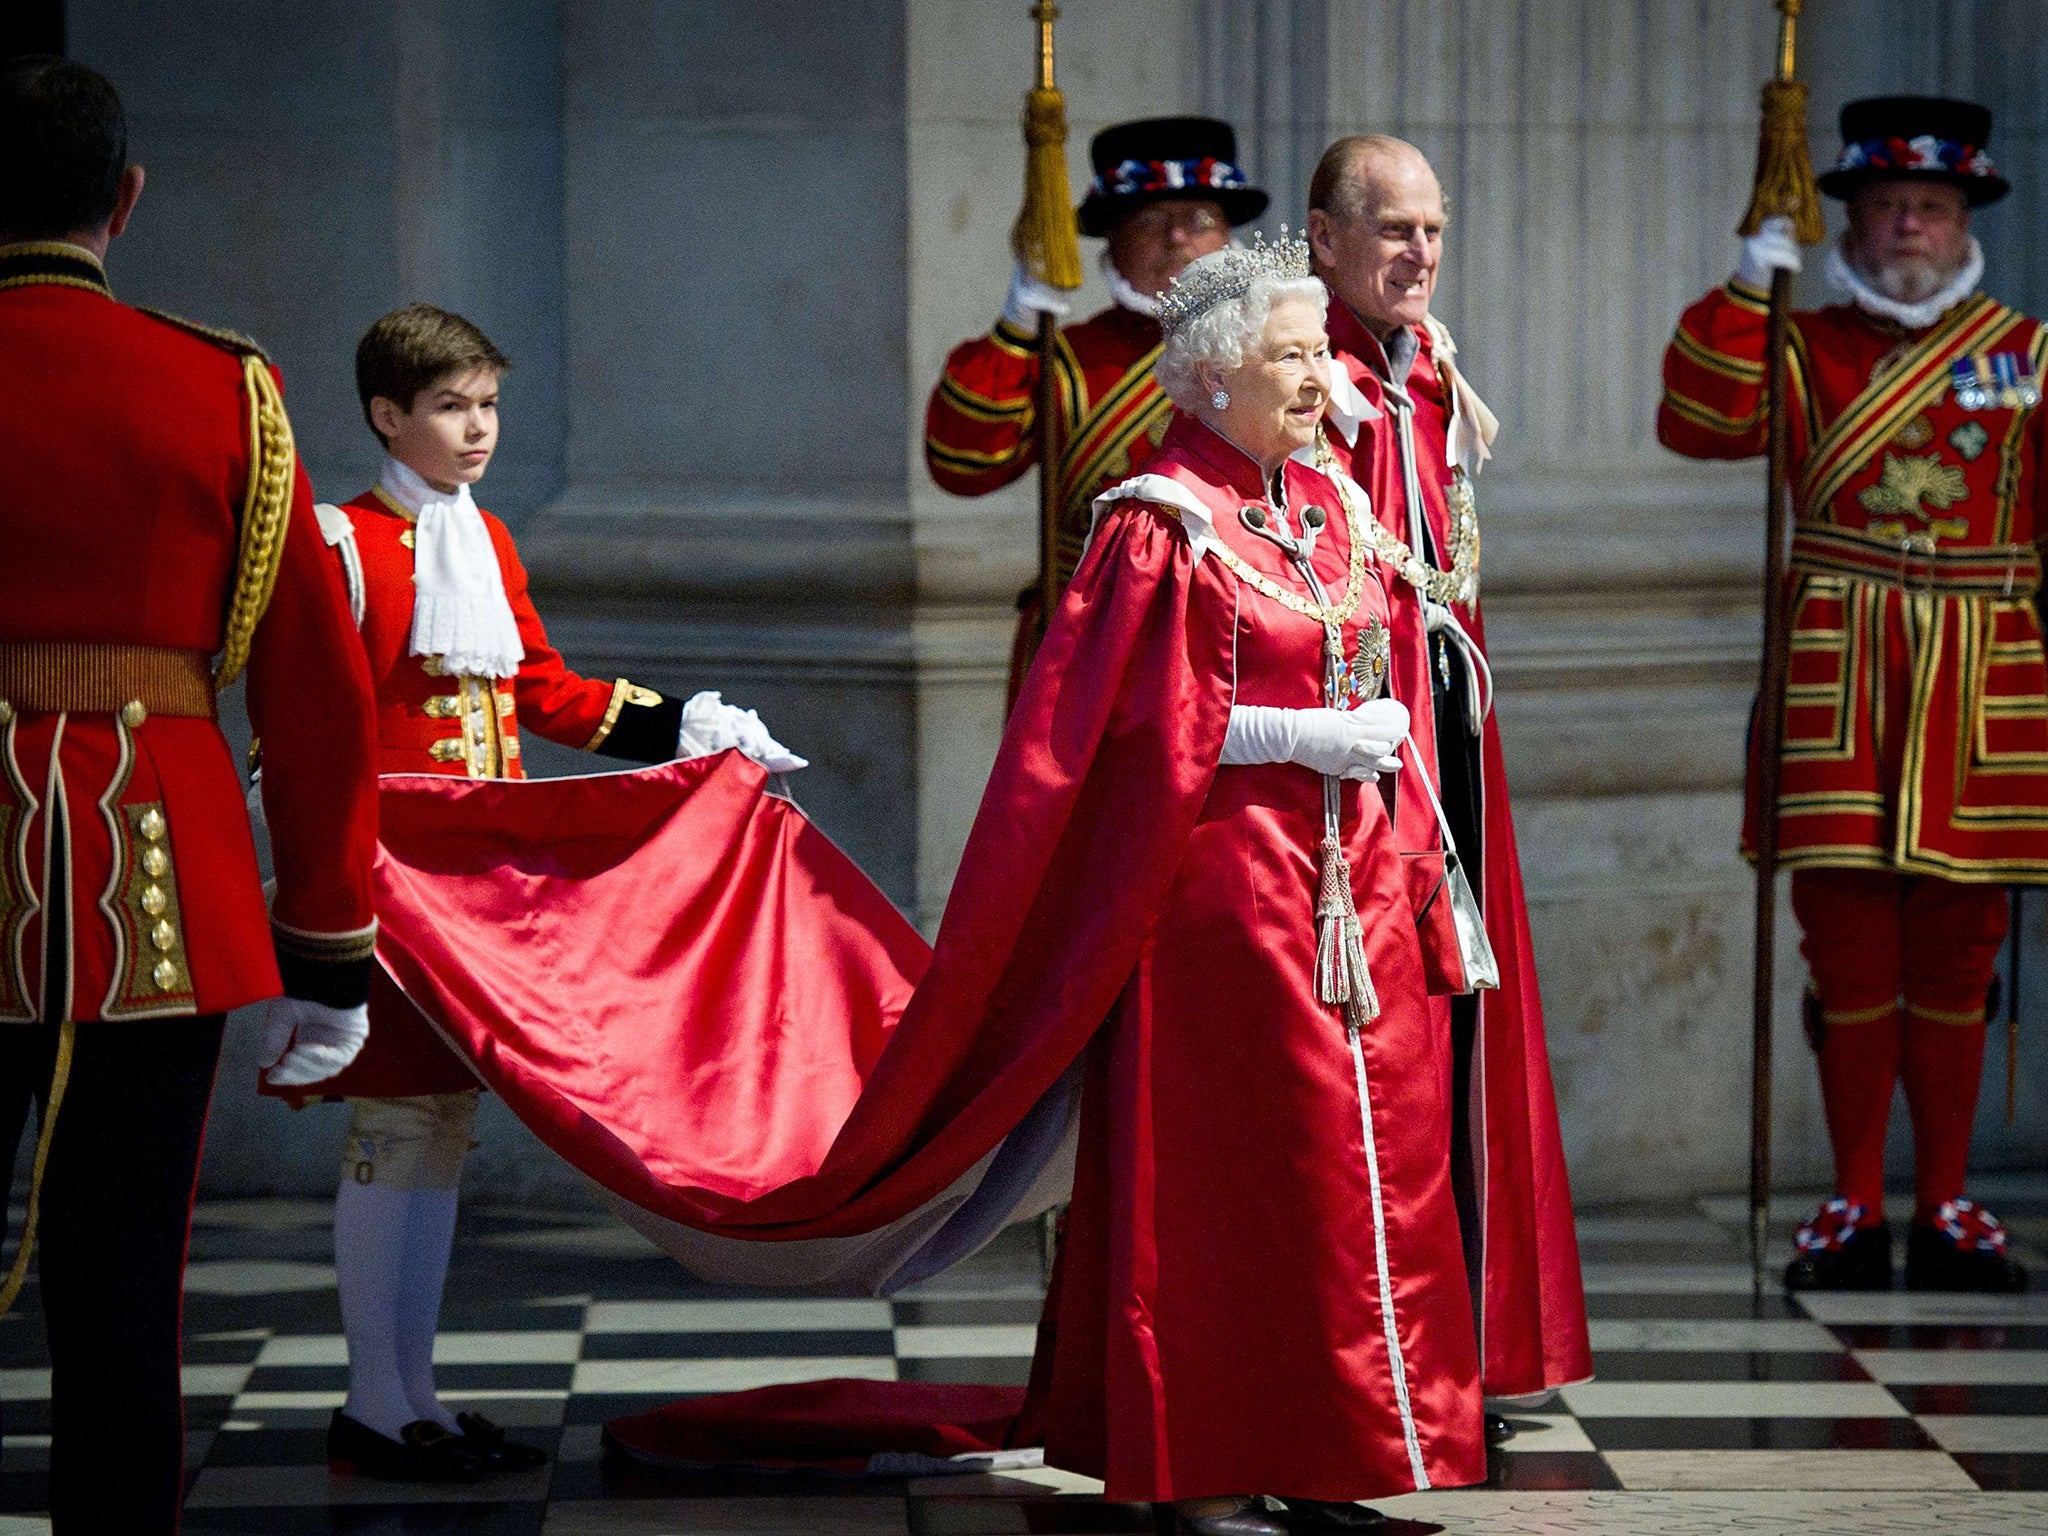 Queen Elizabeth Ii Becomes Longest Reigning Monarch In